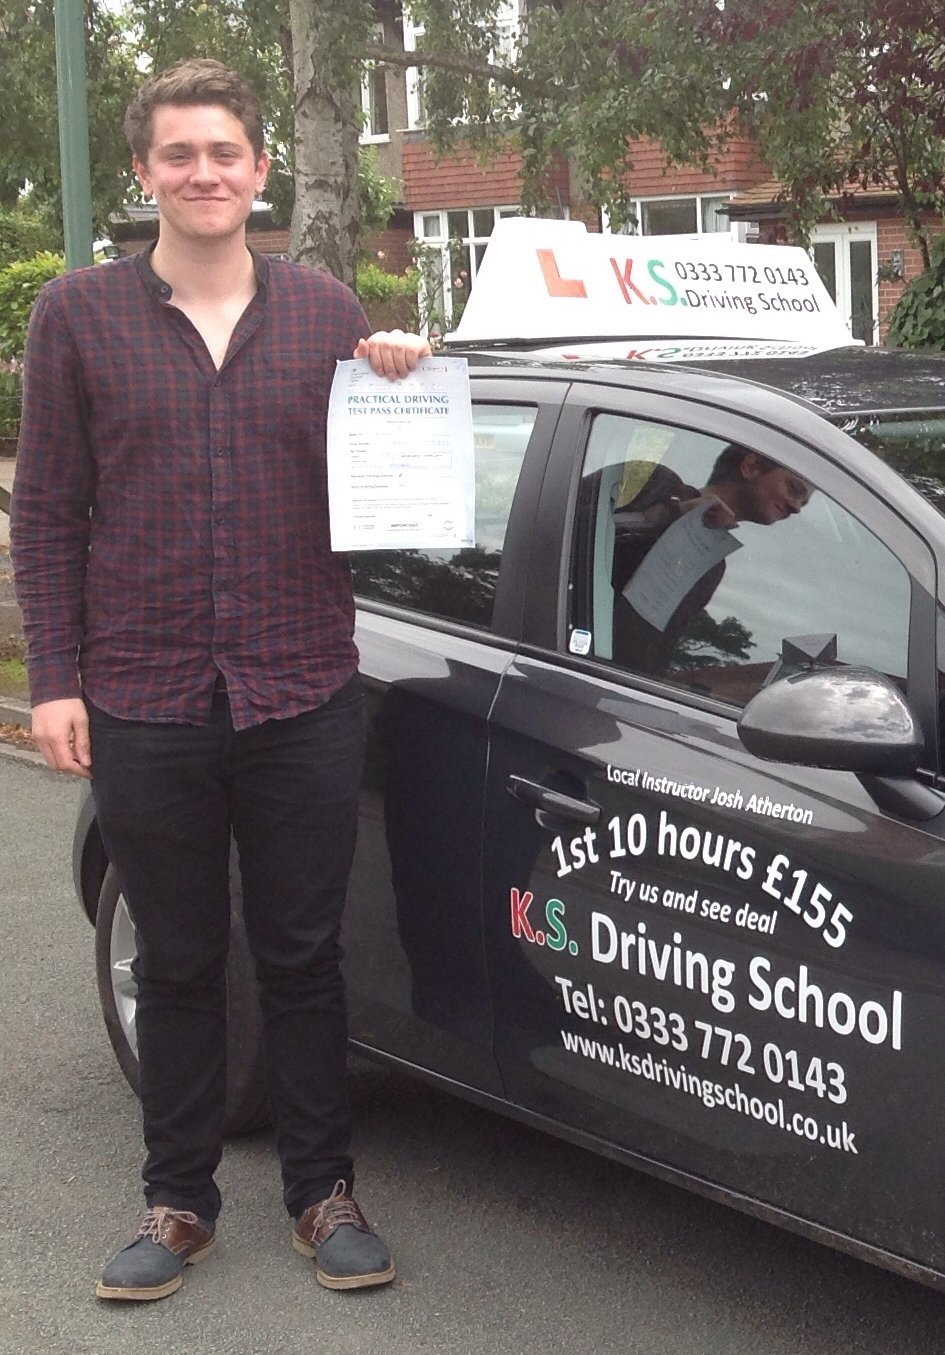 Congratulations to David Snowdon who Passed his Practical Driving Test